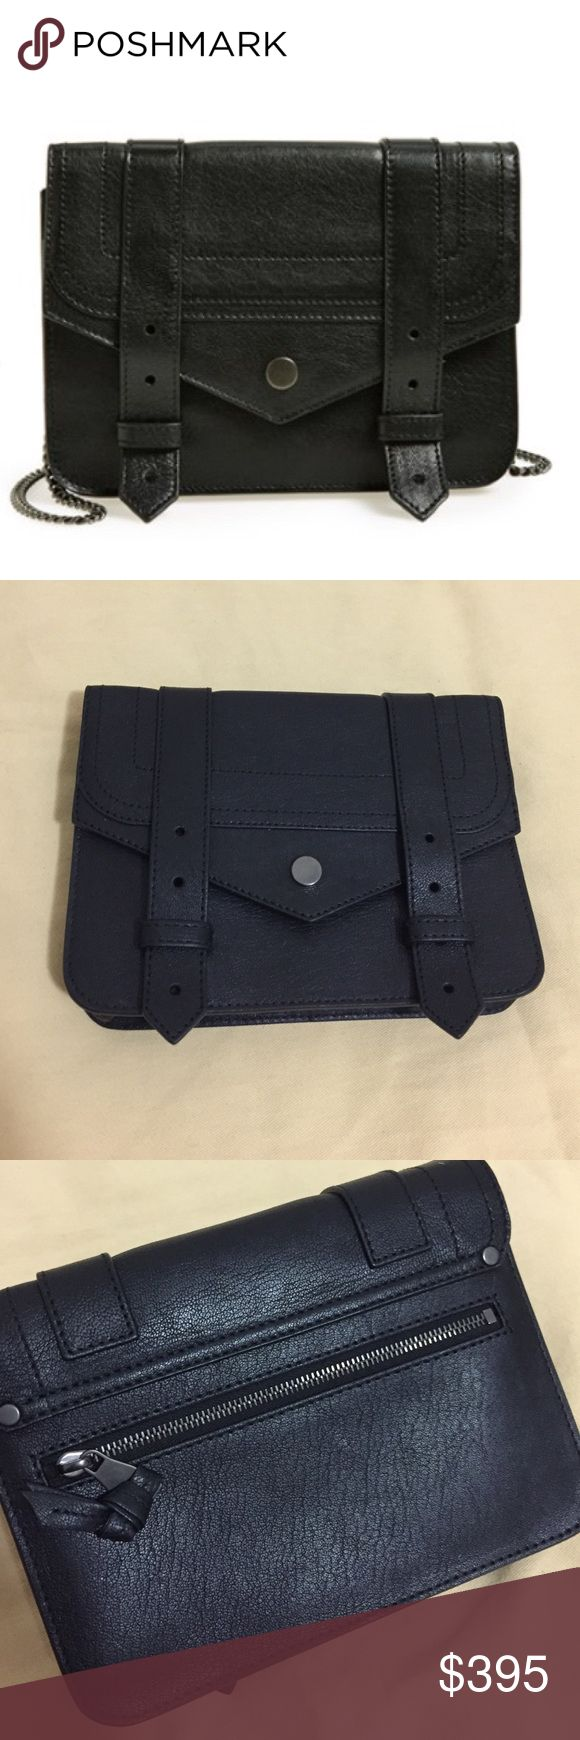 Proenza Schouler 'Large PS1' Crossbody Wallet 💯 AUTHENTIC. GENTLY USED. *MISSING THE STRAP* But can be used as a clutch or wallet. Or you can order from Proenza. Light scratches on leather, interior is clean. No box or dust bag. Magnetic-snap flap and pull-through strap closures. Optional drop-in chain strap. Exterior zip pocket; slip pocket underneath flap. Interior zip and smartphone pockets; six card slots; mirror underneath flap. Lambskin leather. By Proenza Schouler; made in Italy. 7…